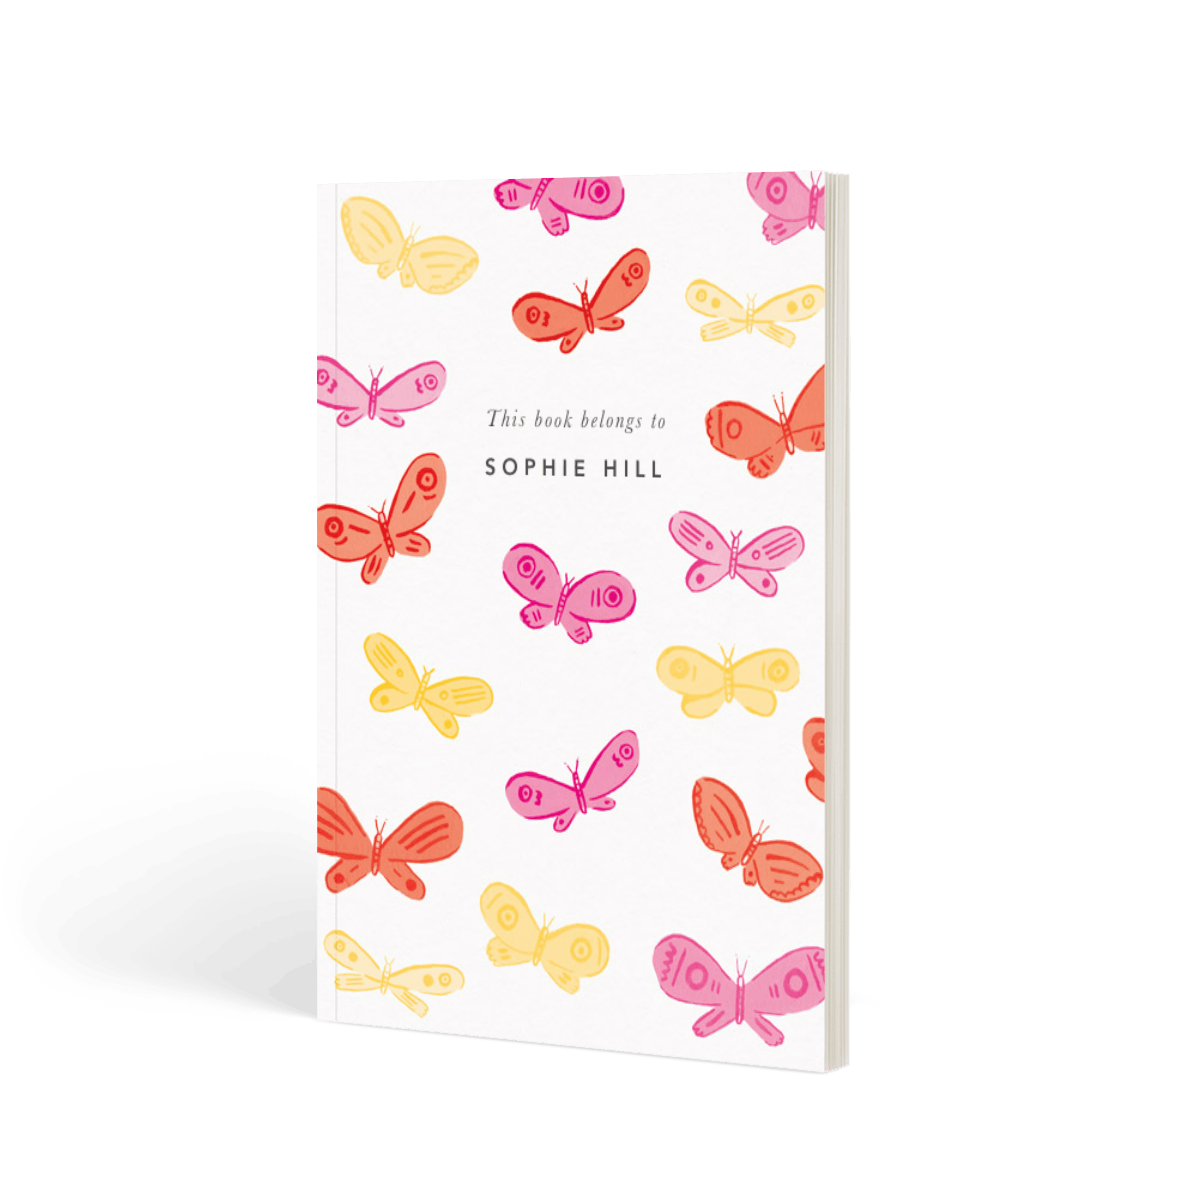 Https%3a%2f%2fwww.papier.com%2fproduct image%2f13757%2f6%2fpink butterflies 3535 front 1479228065.png?ixlib=rb 1.1